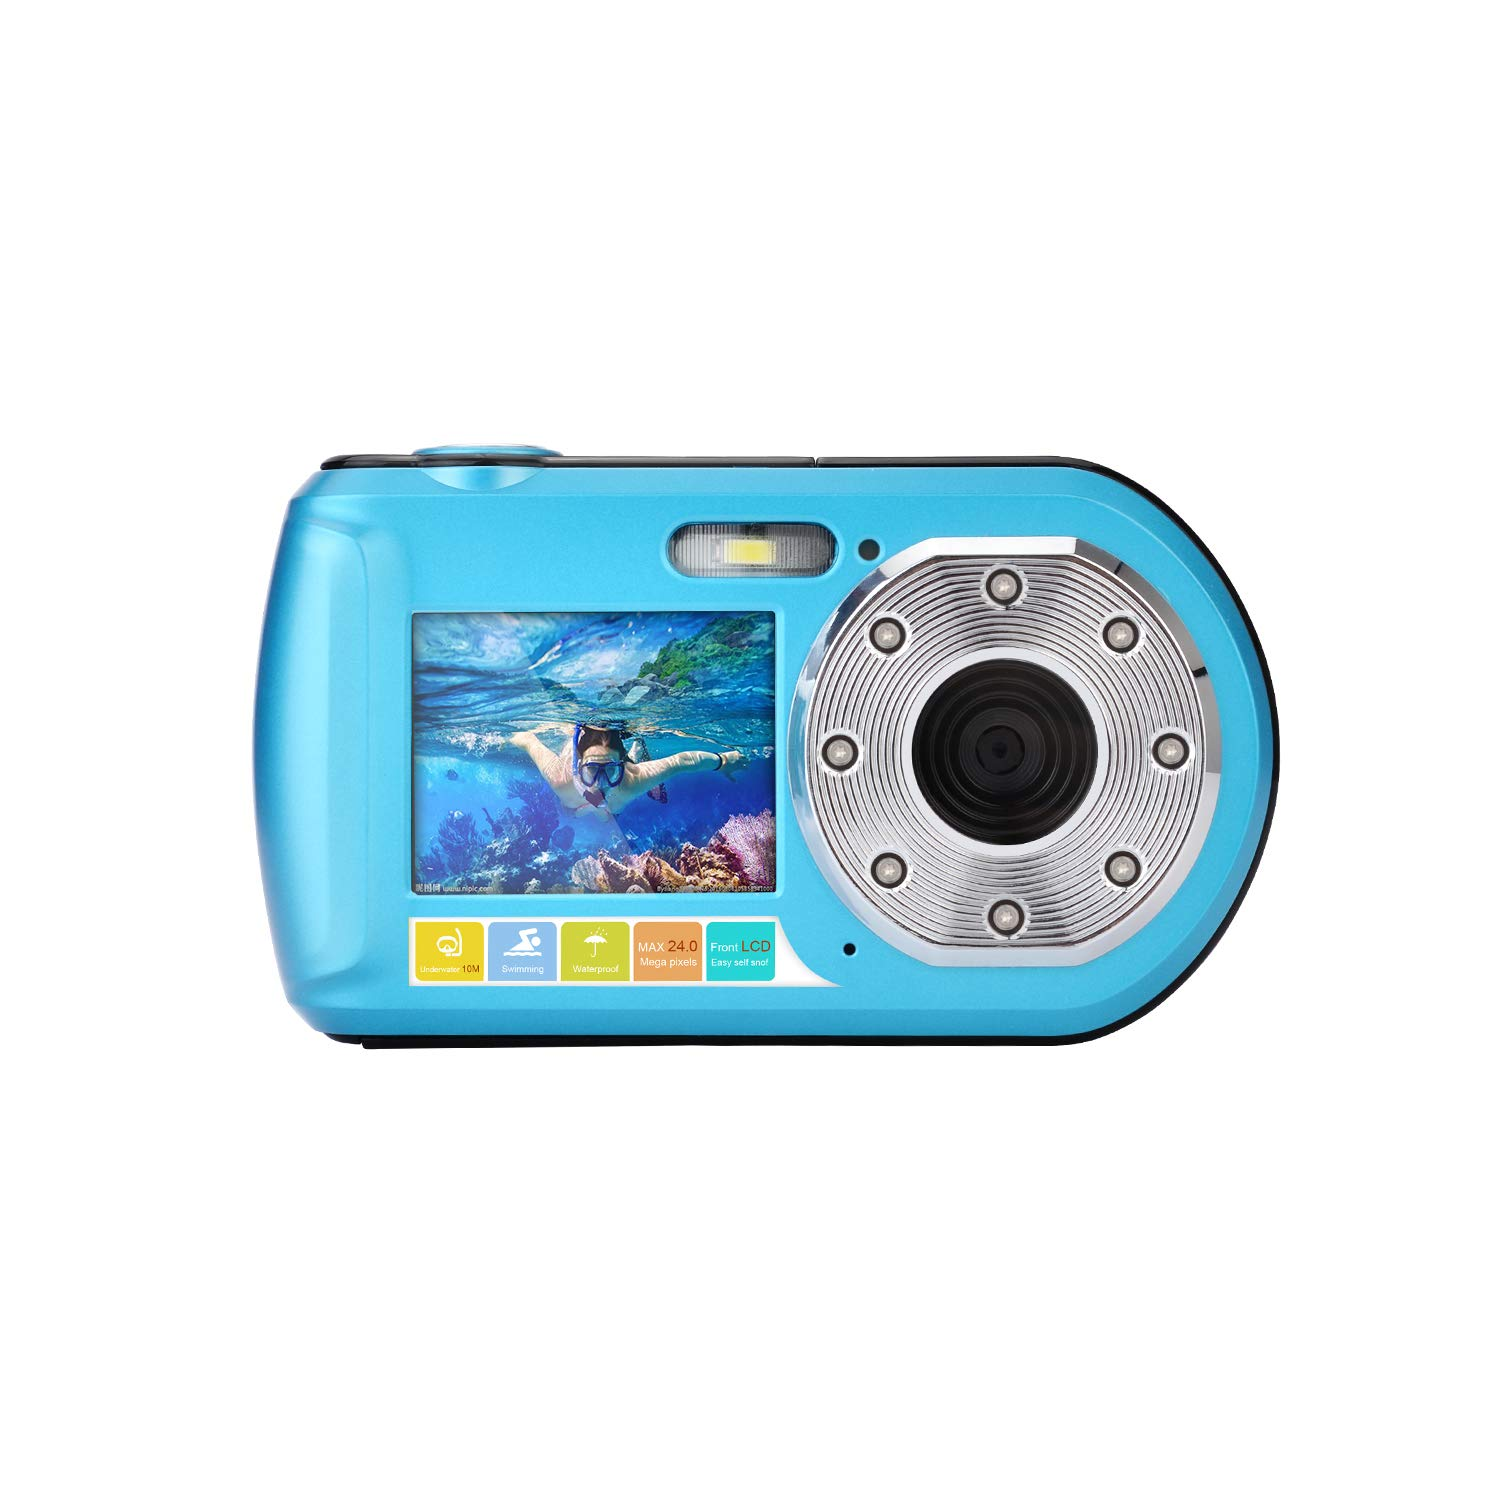 Underwater Camera Diving 10M Full HD 1080P Waterproof Camera for Snorkeling Selfie Dual Screen Action Camera 24MP Video Recorder Digital Camera by GordVE